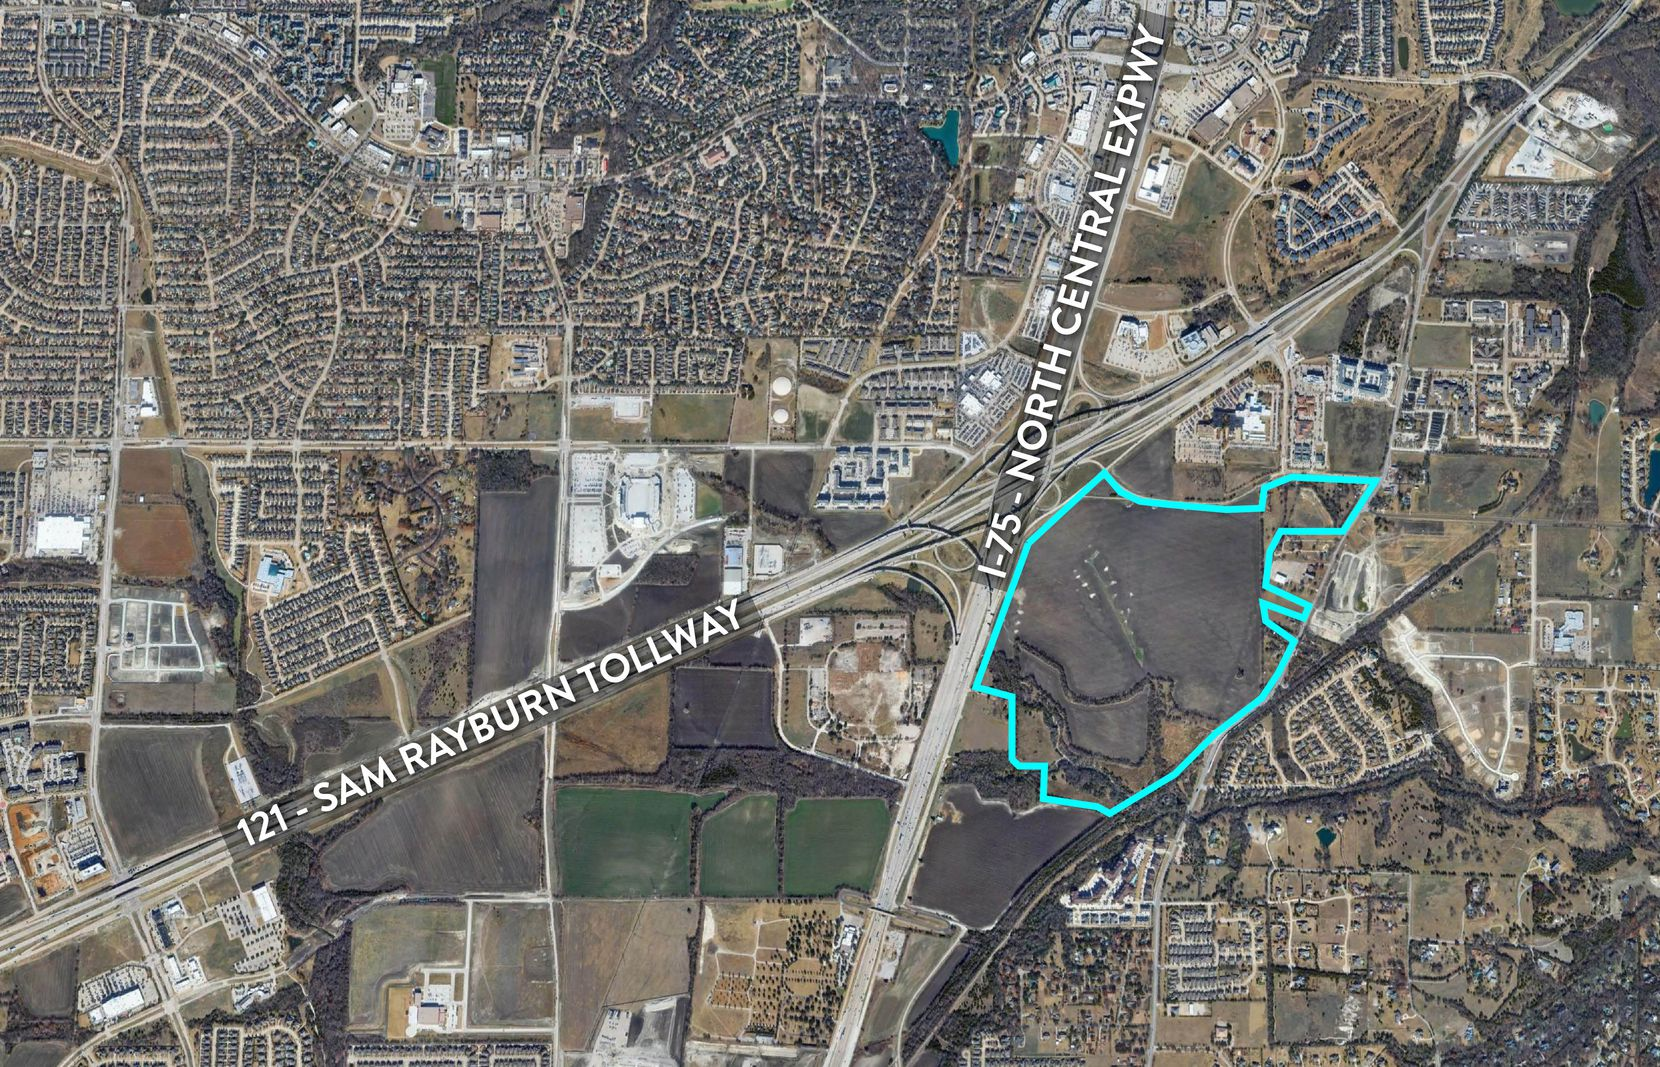 The property Billingsley Co. plans to develop is at the southeast corner of U.S. 75 and S.H. 121.